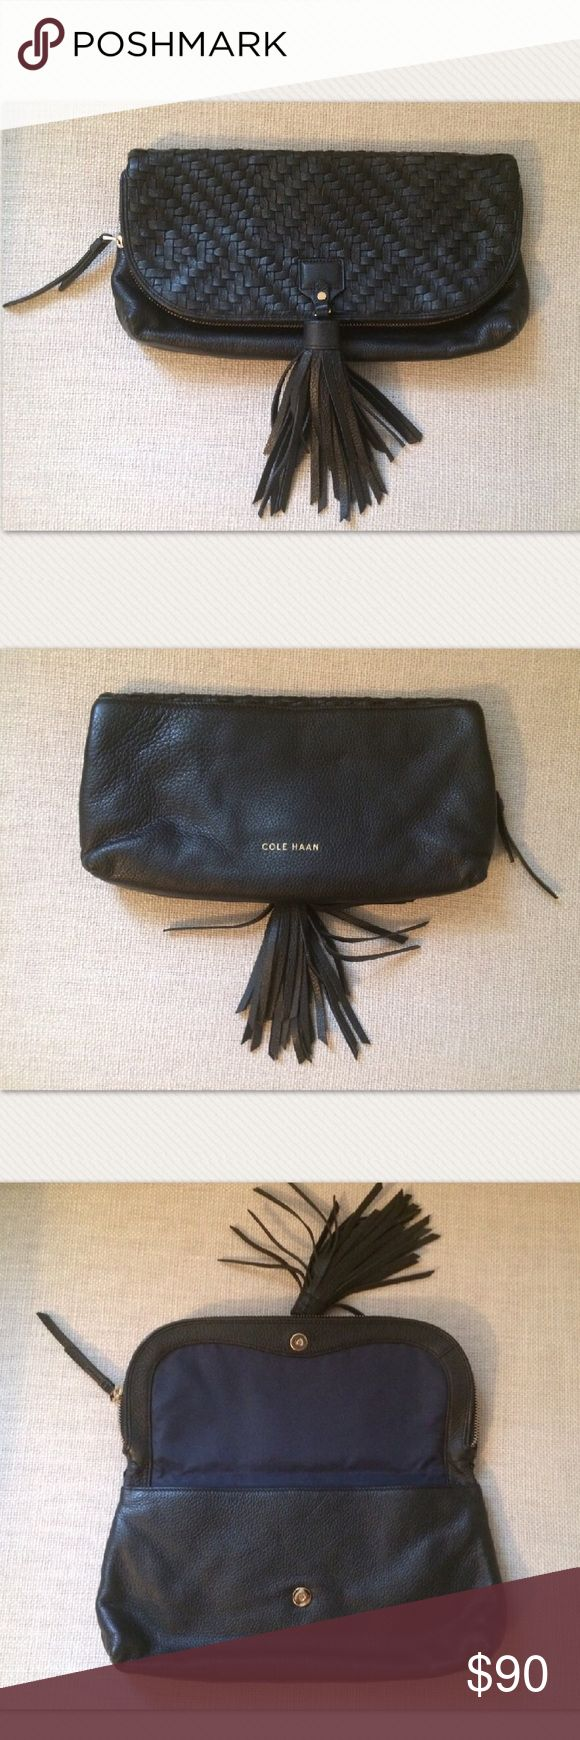 Cole Haan Clutch Spacious, black, 100% leather Cole Haan clutch purse with tassel, enjoy! 🌺 Cole Haan Bags Clutches & Wristlets